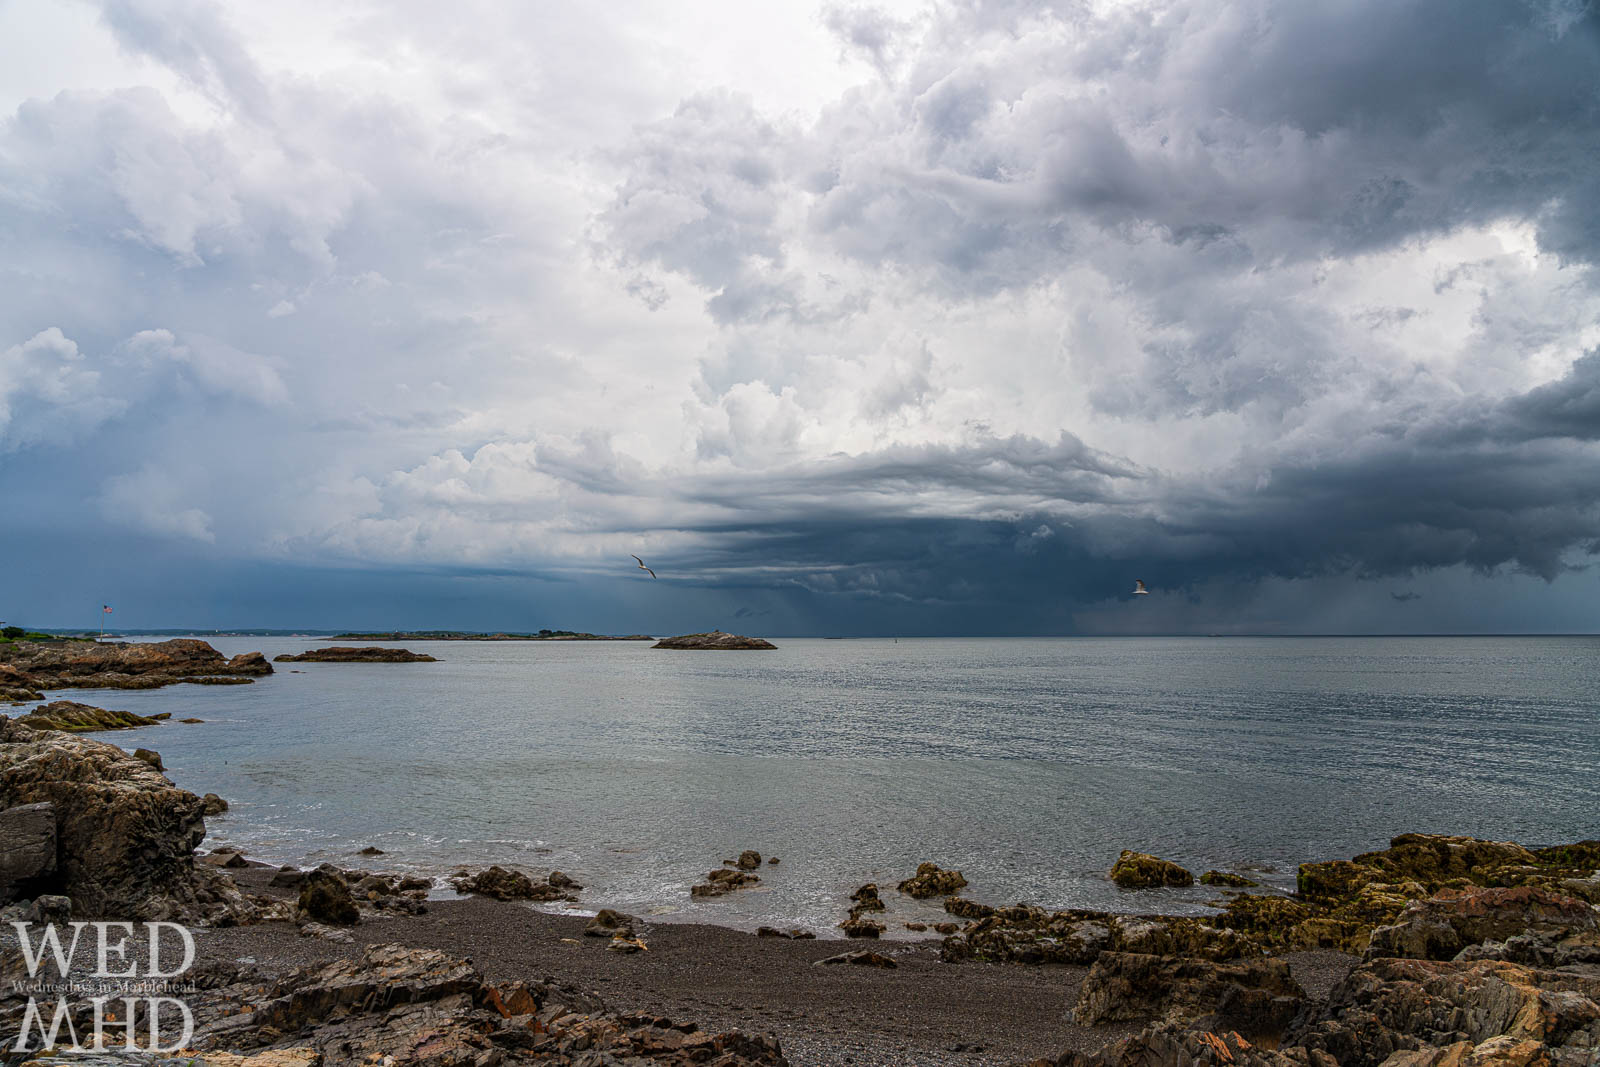 Two birds perform a Castle Rock fly by as a storm churns offshore creating a dramatic sky over the calm waters and rocky shoreline